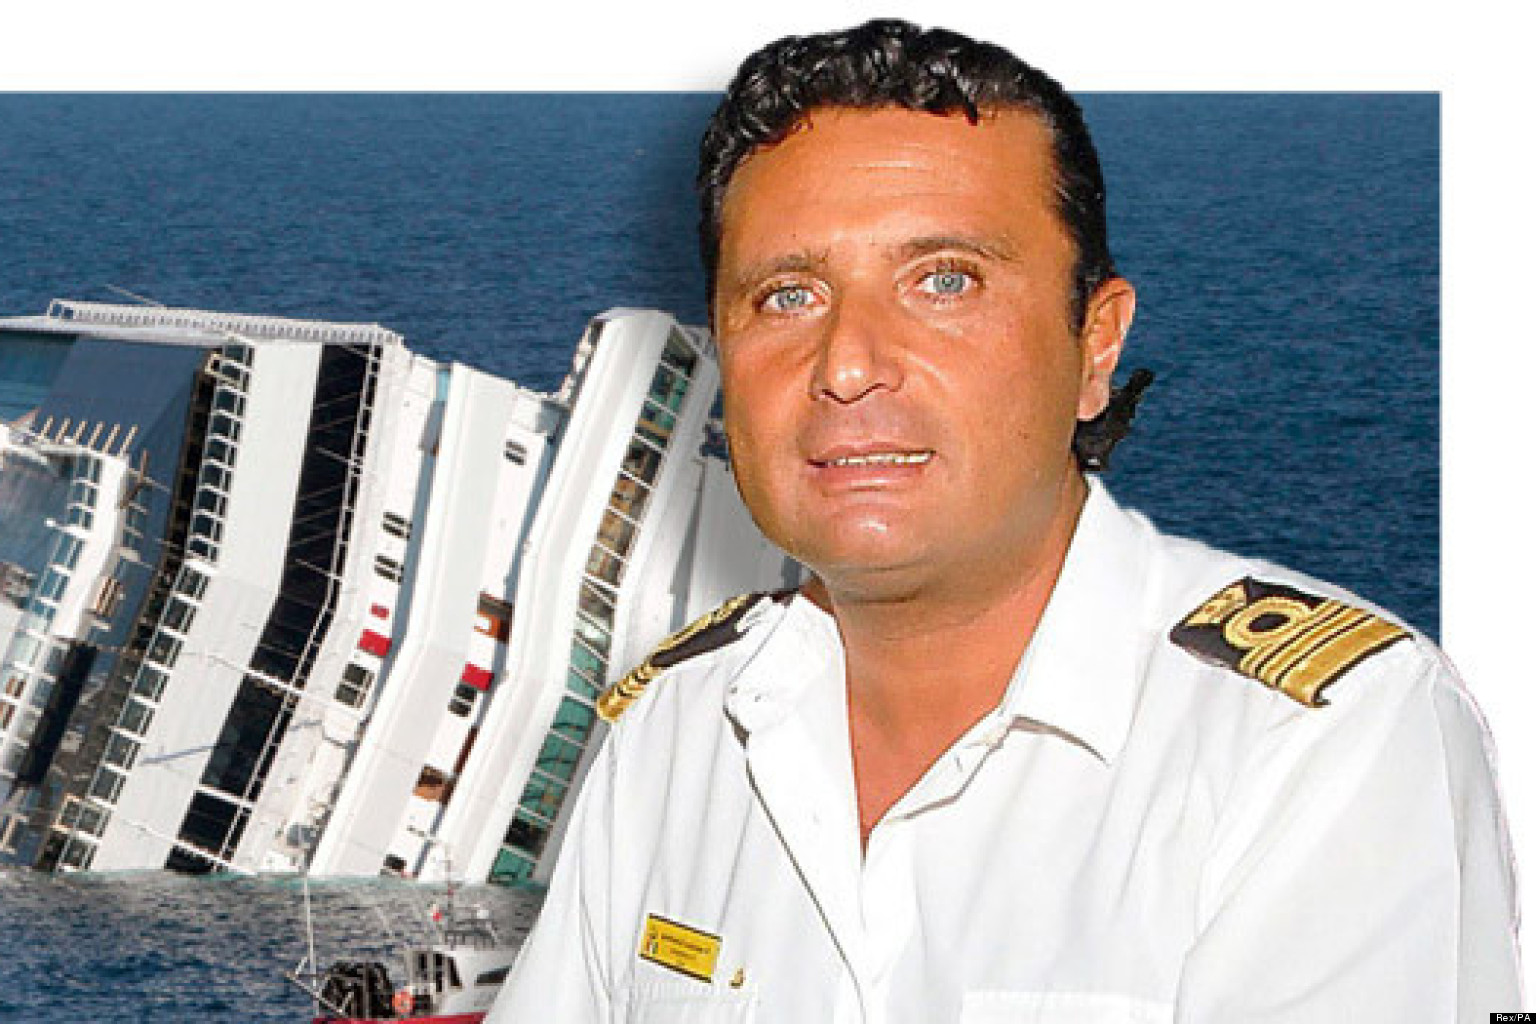 o-CAPTAIN-FRANCESCO-SCHETTINO-COSTA-CONC